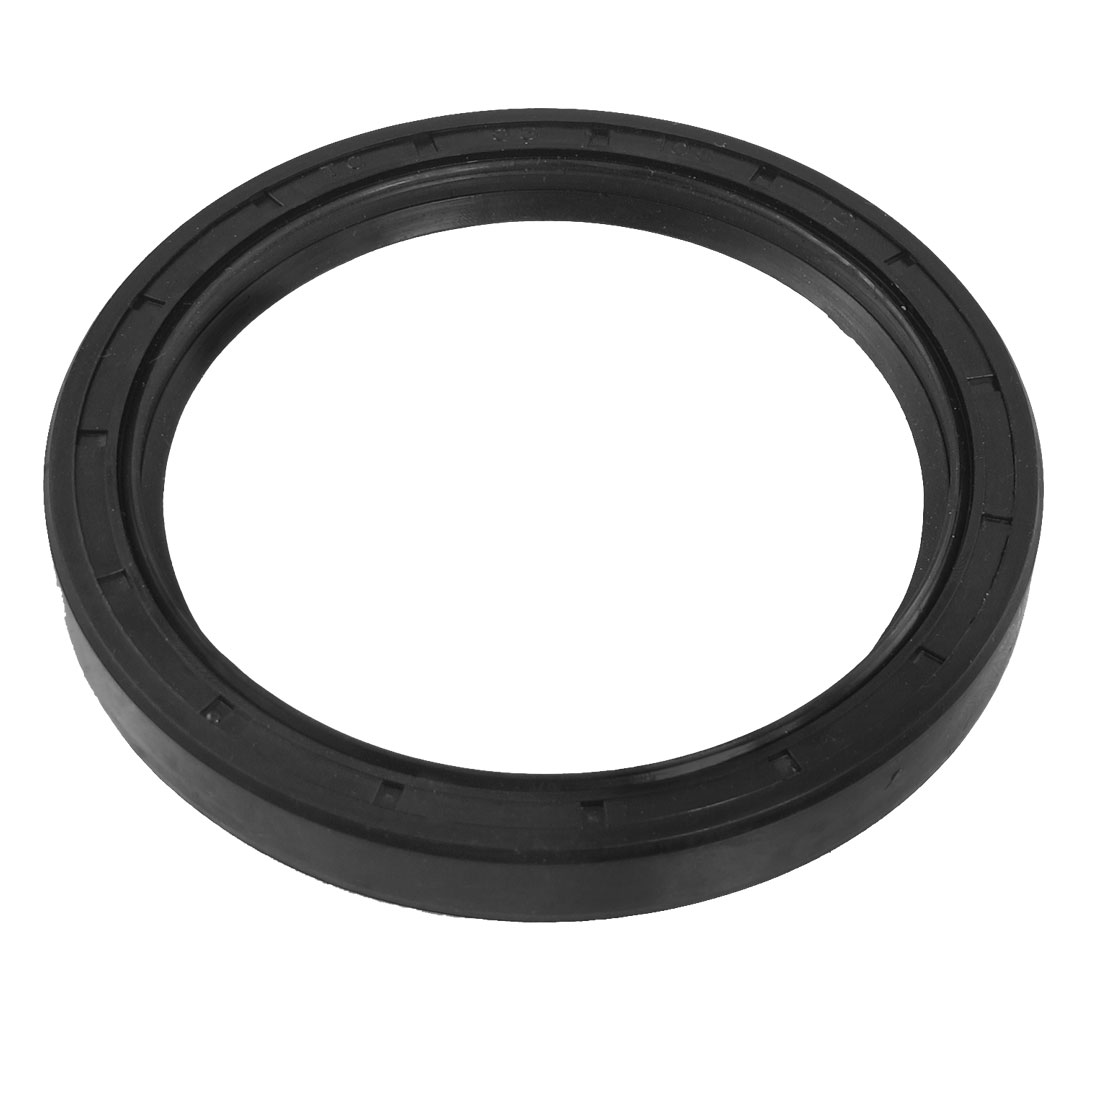 Black Nitrile Rubber Dual Lips Oil Shaft Seal TC 85mm x 105mm x 12mm